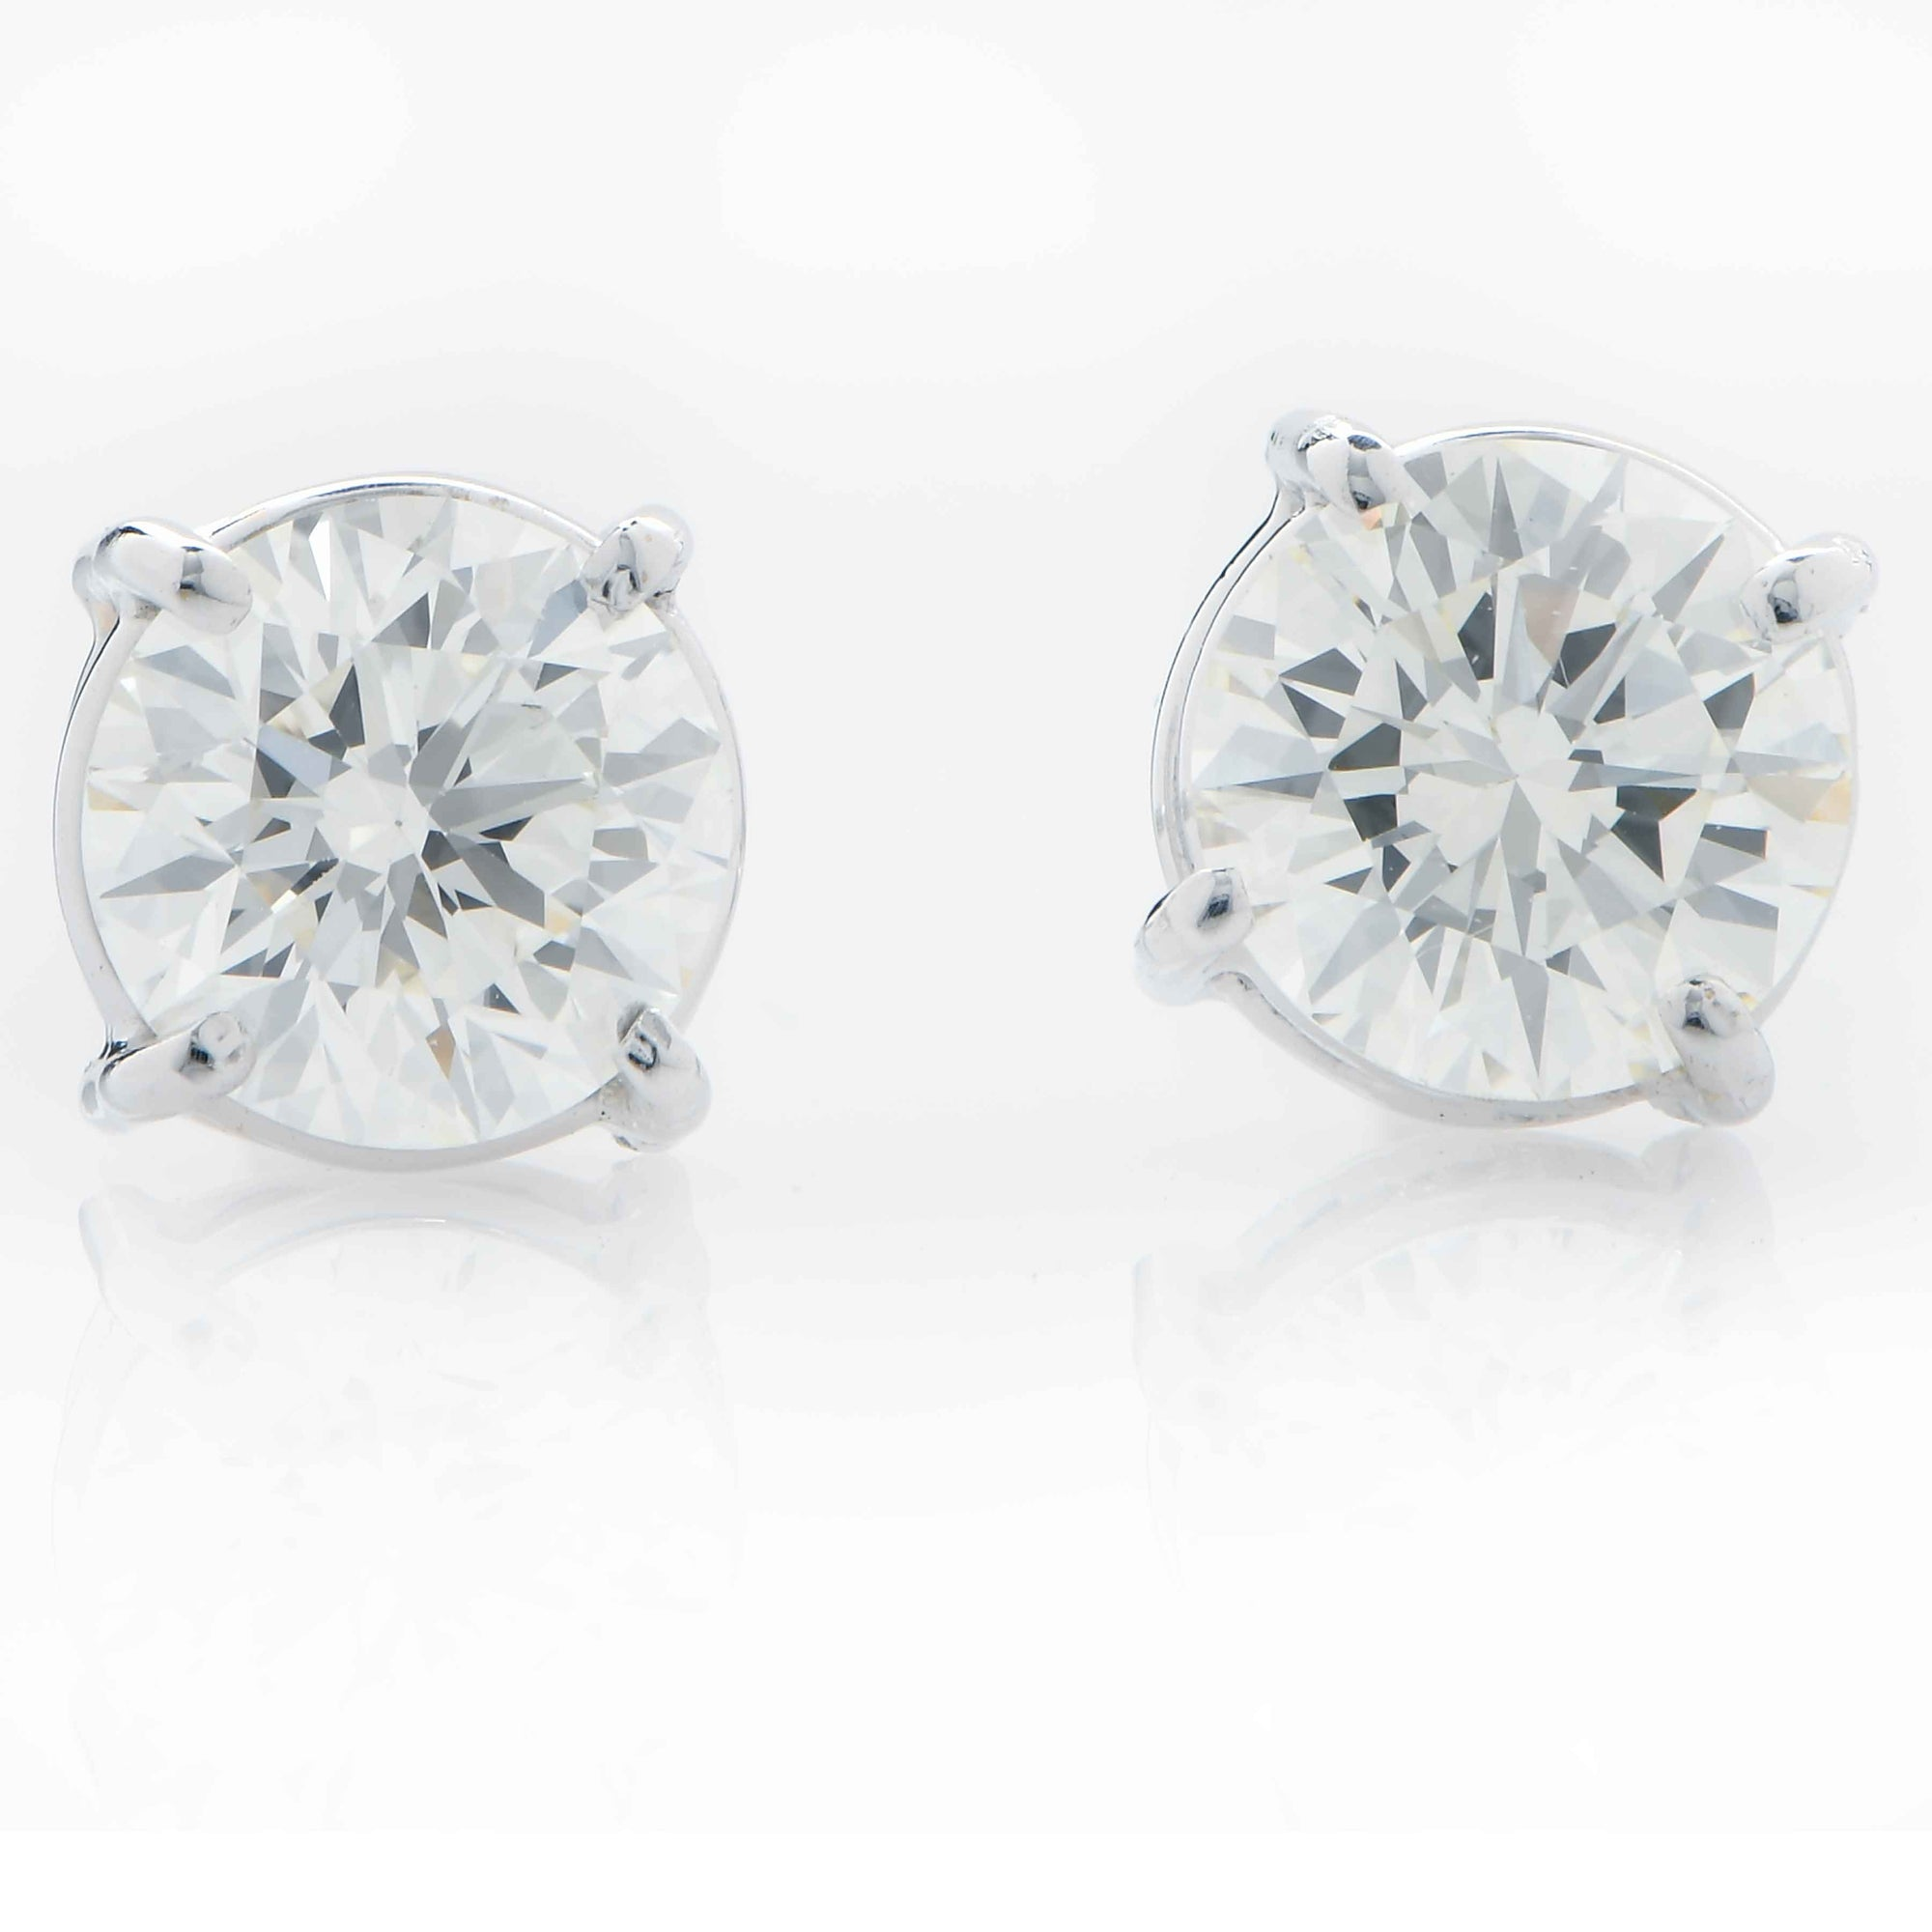 1.48 Carat Total Weight Diamond Stud Earrings